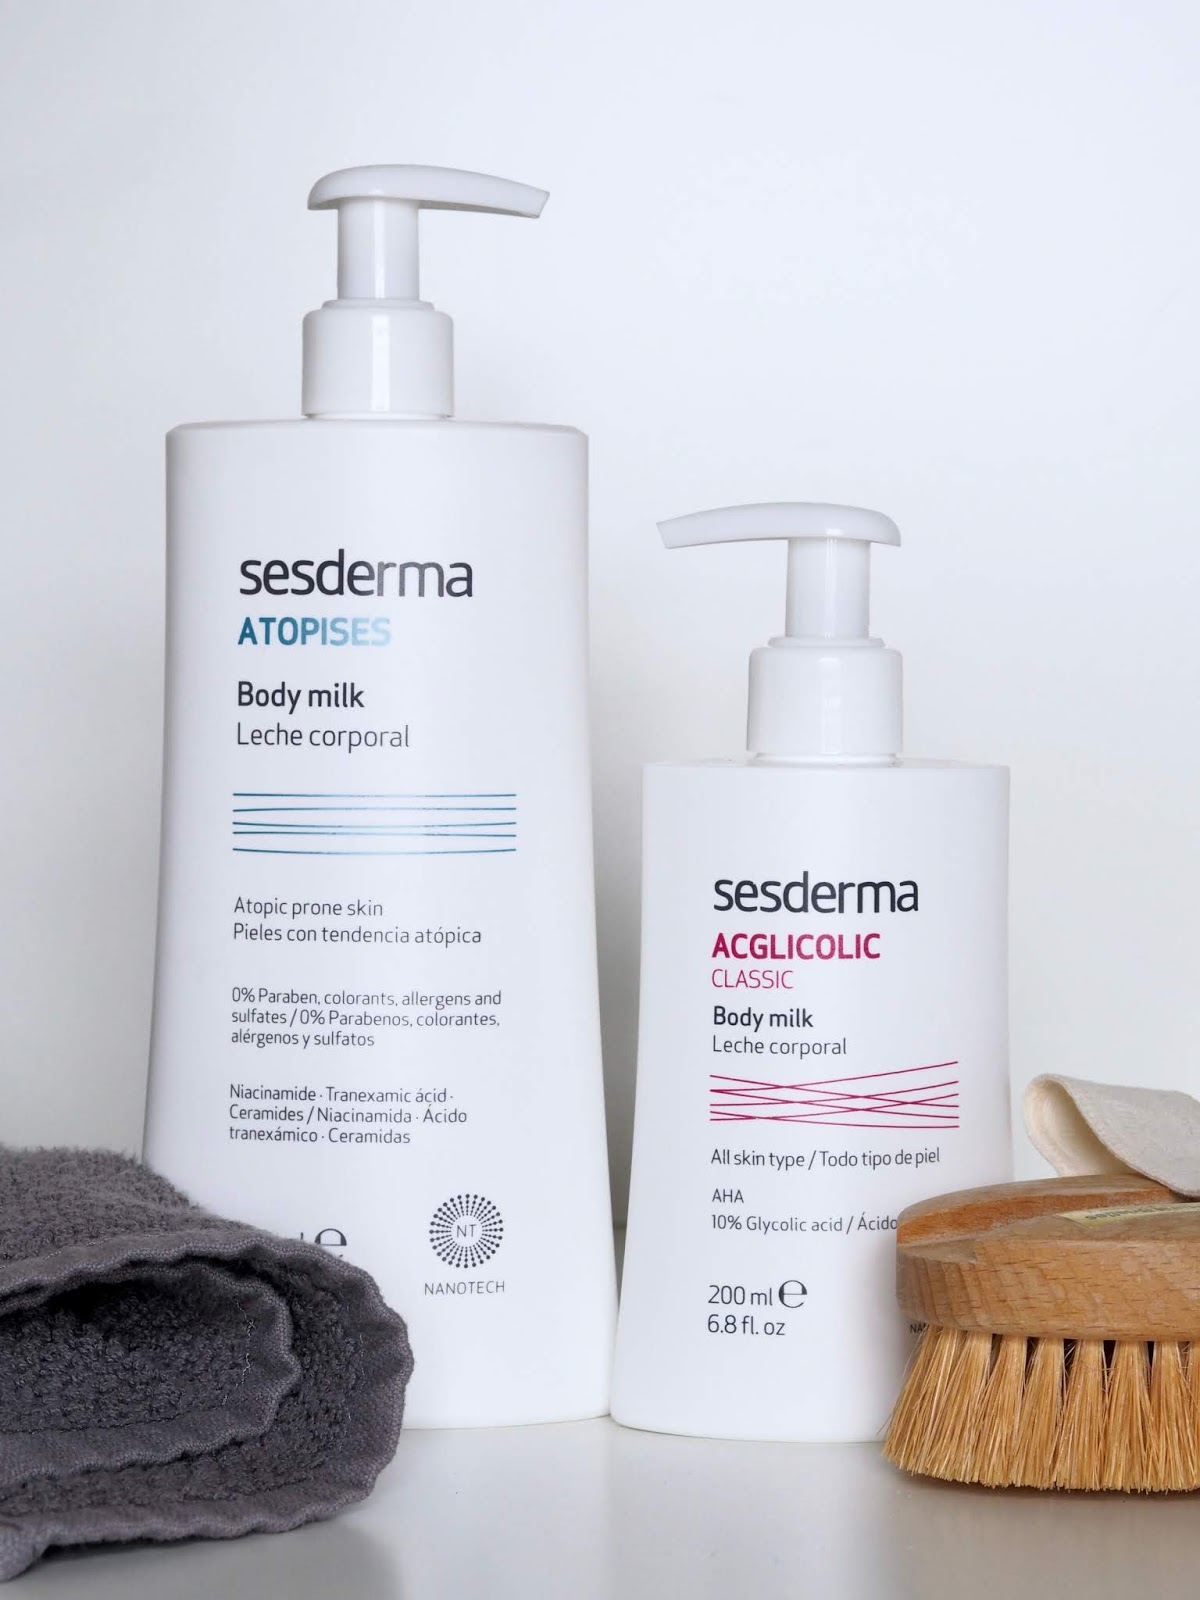 Sesderma Atopises and Acglicolic body milks